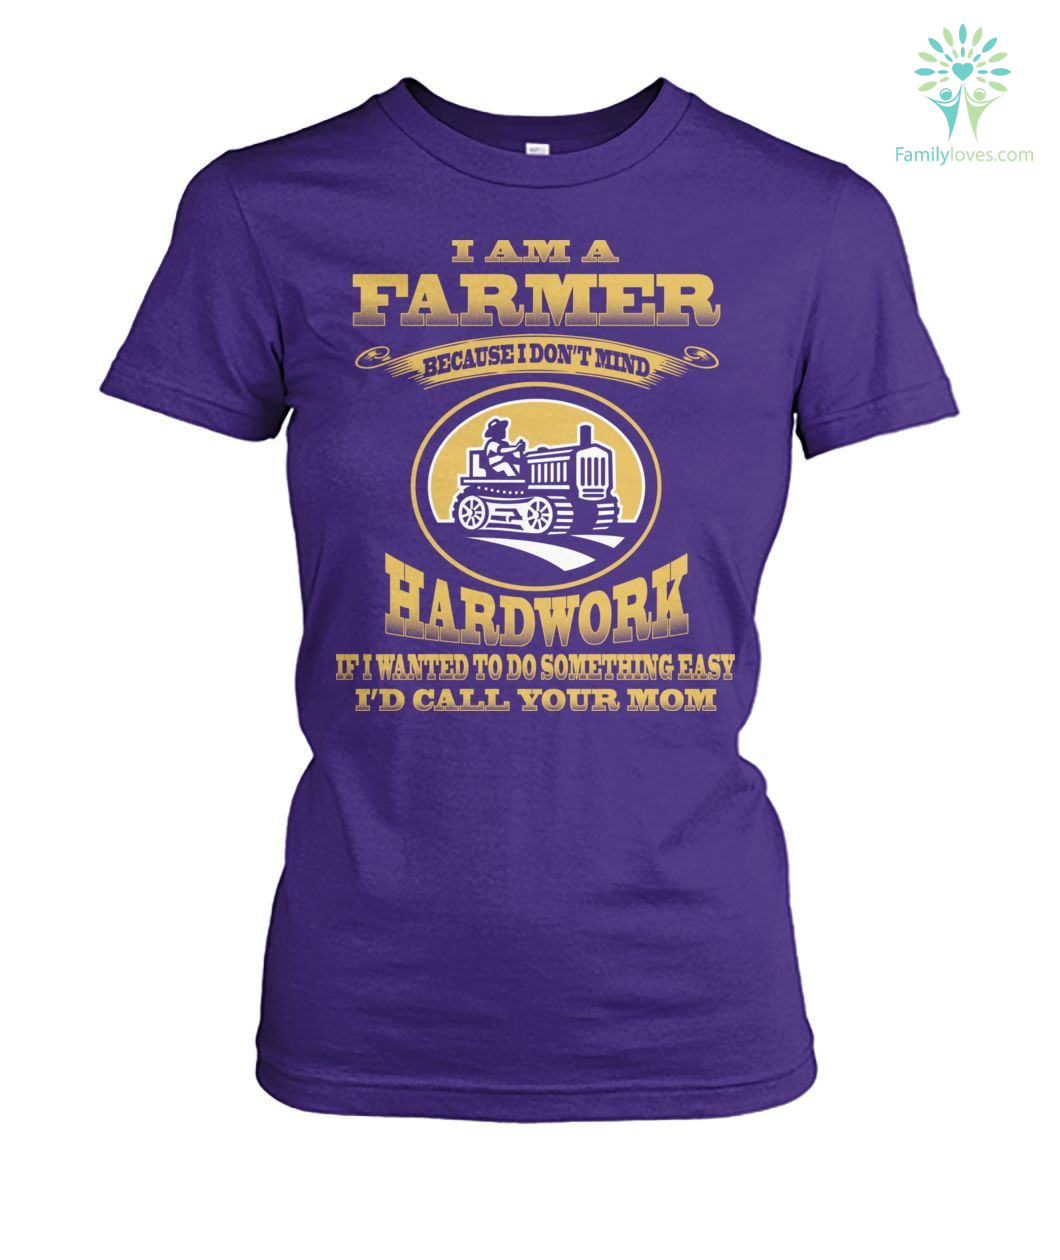 i am a farmer because i don't mind hardwork if i wanted to do something easy i'd call your mom Hoodie/Tshirt Familyloves.com